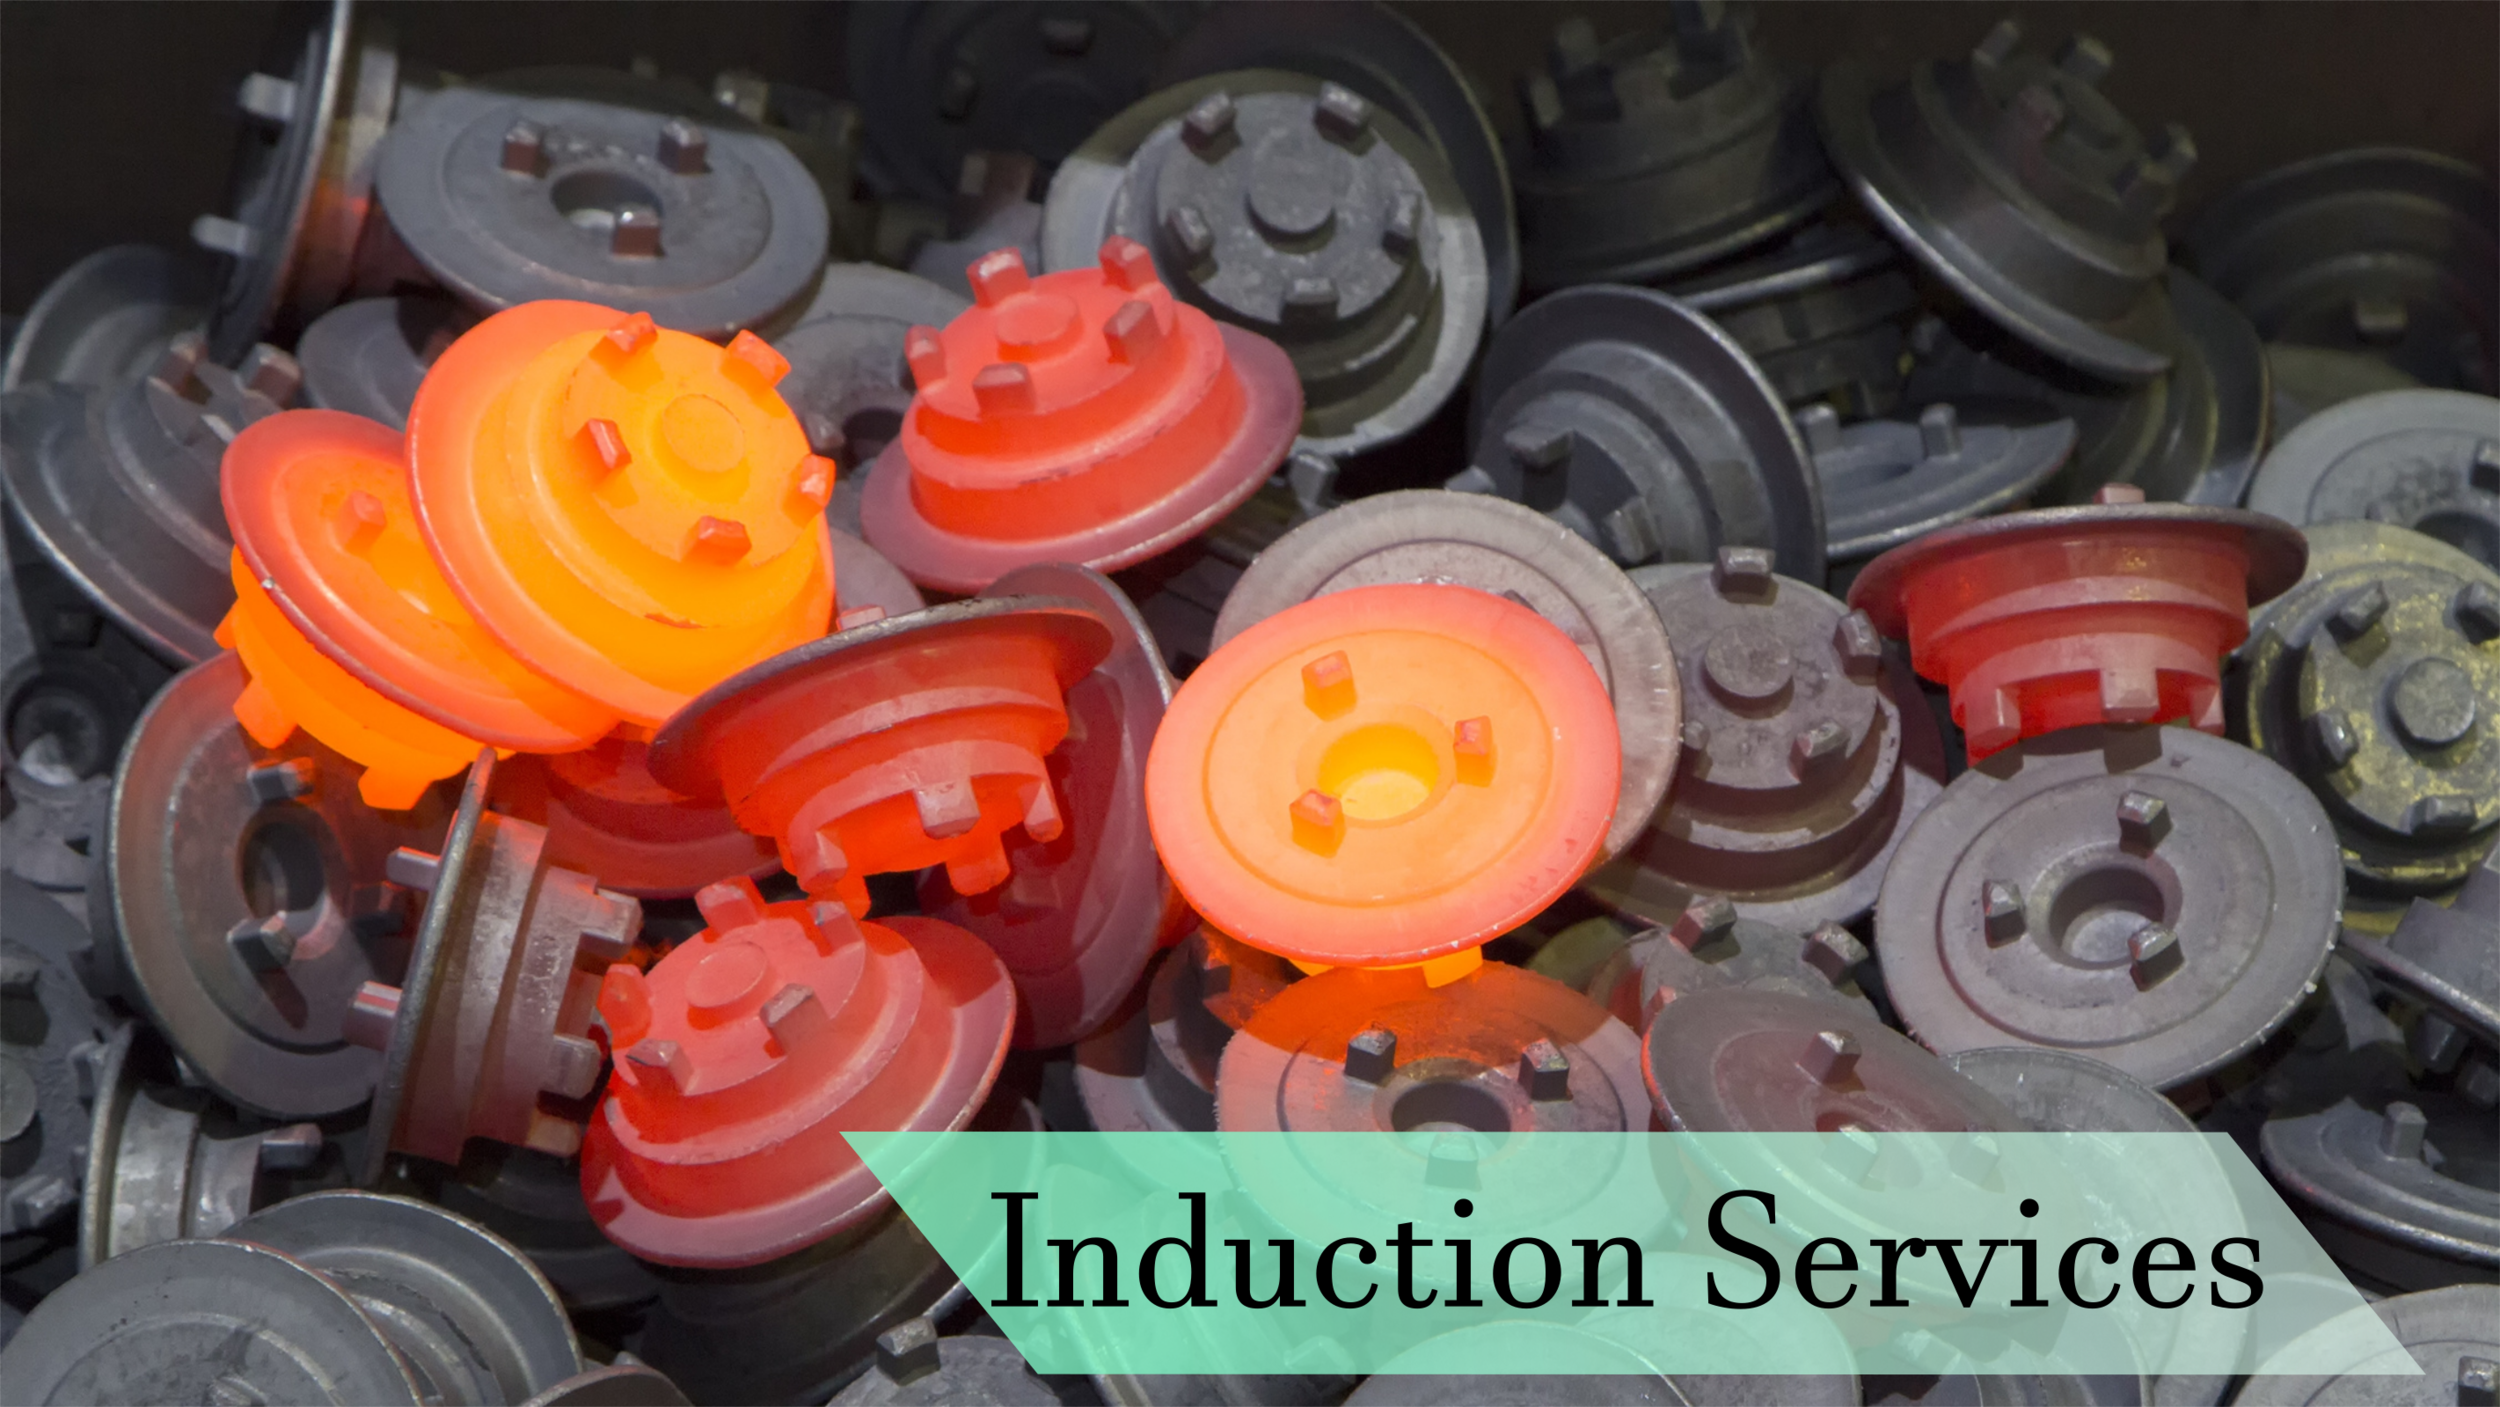 induction services